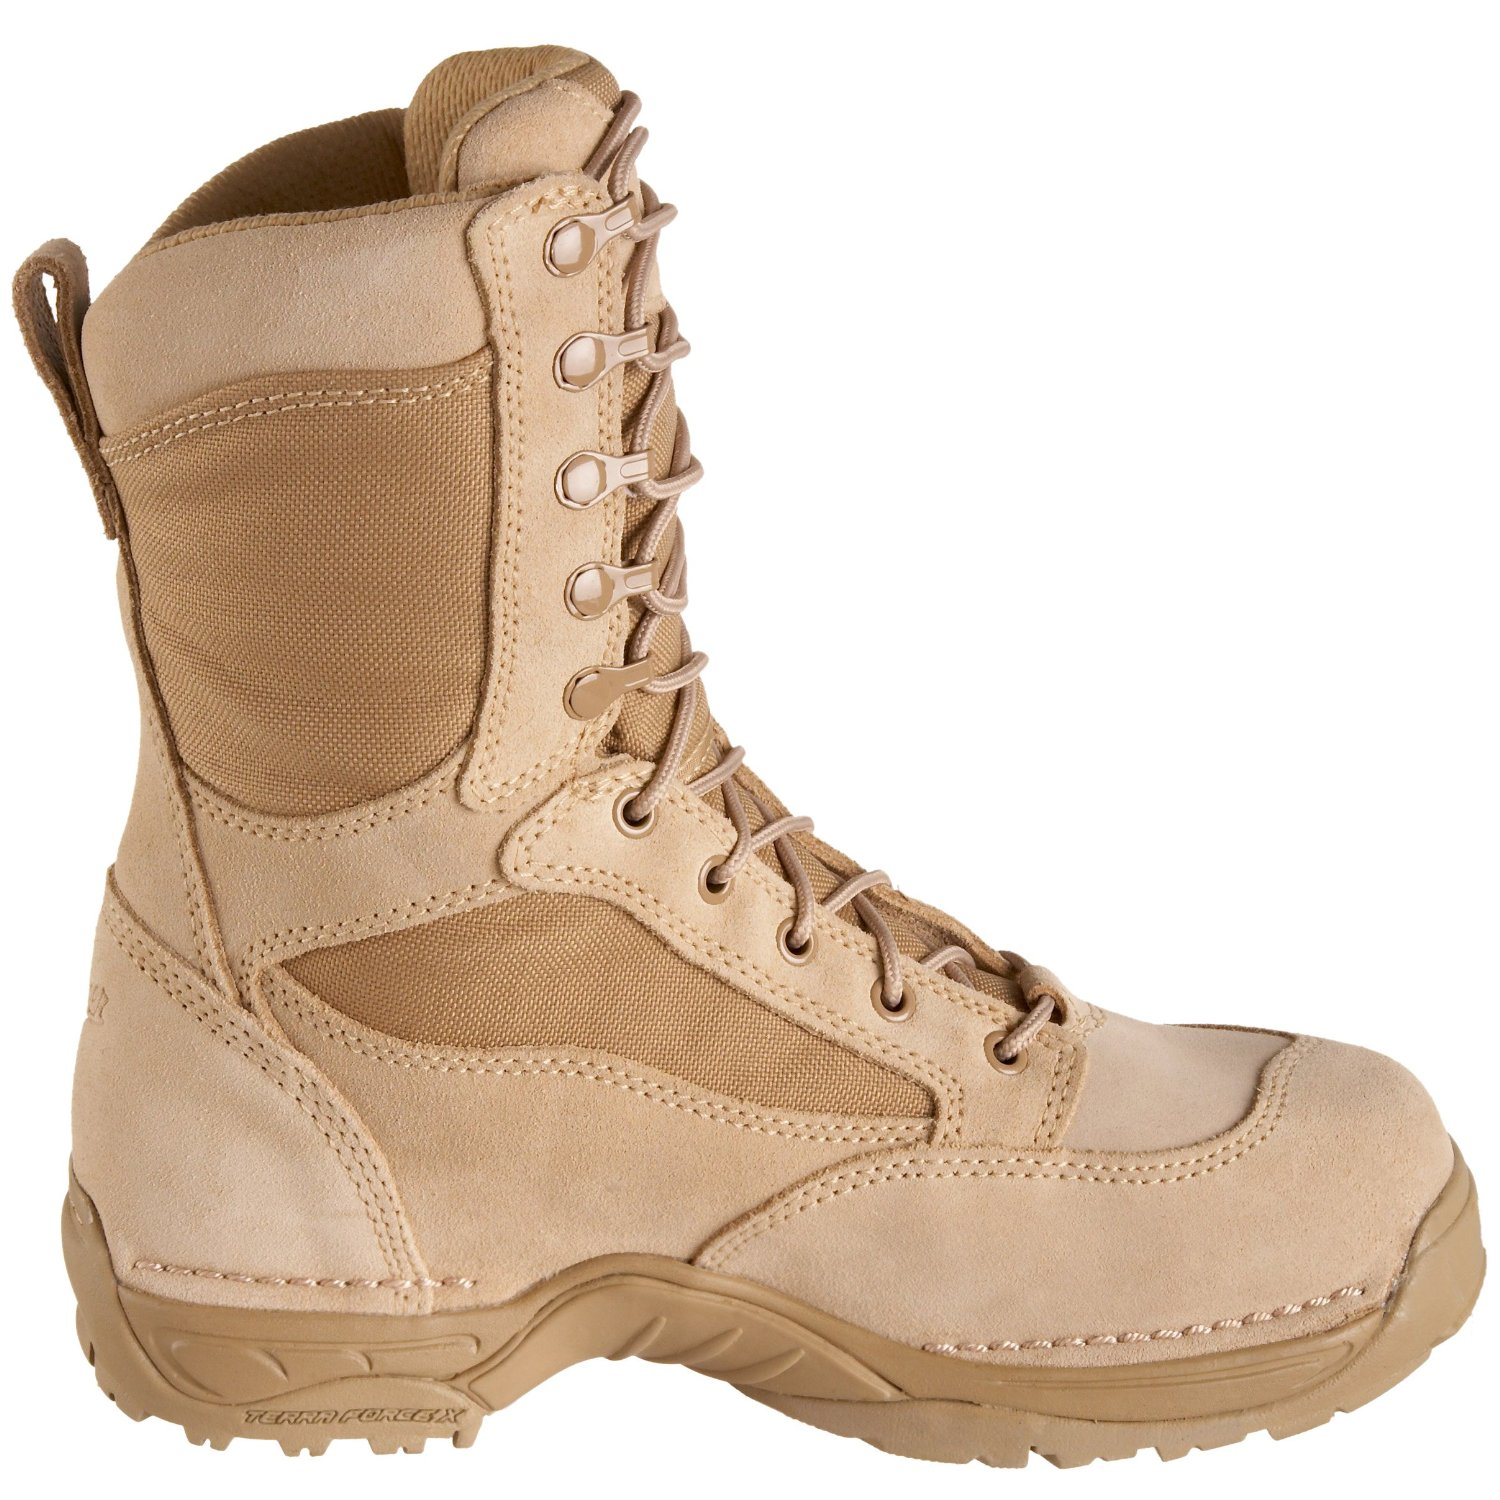 clipart of military boots - photo #47